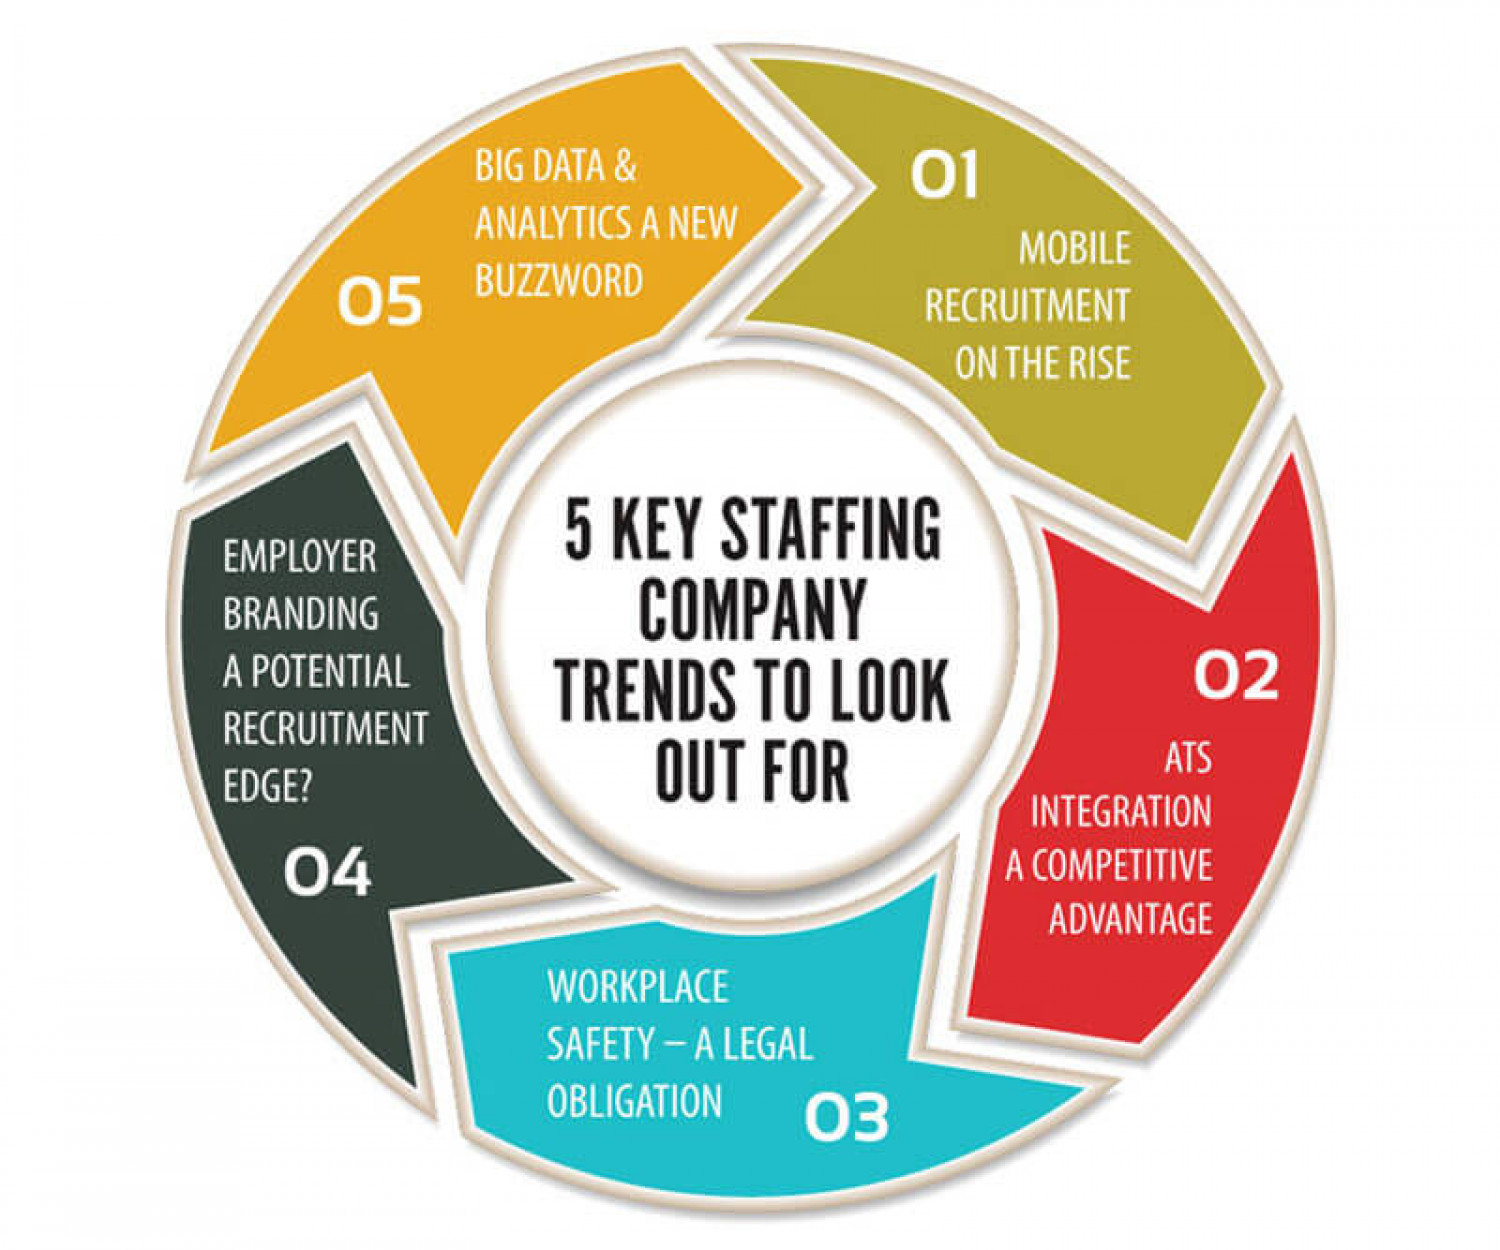 5 Key Staffing Company Trends To Look Out For Infographic